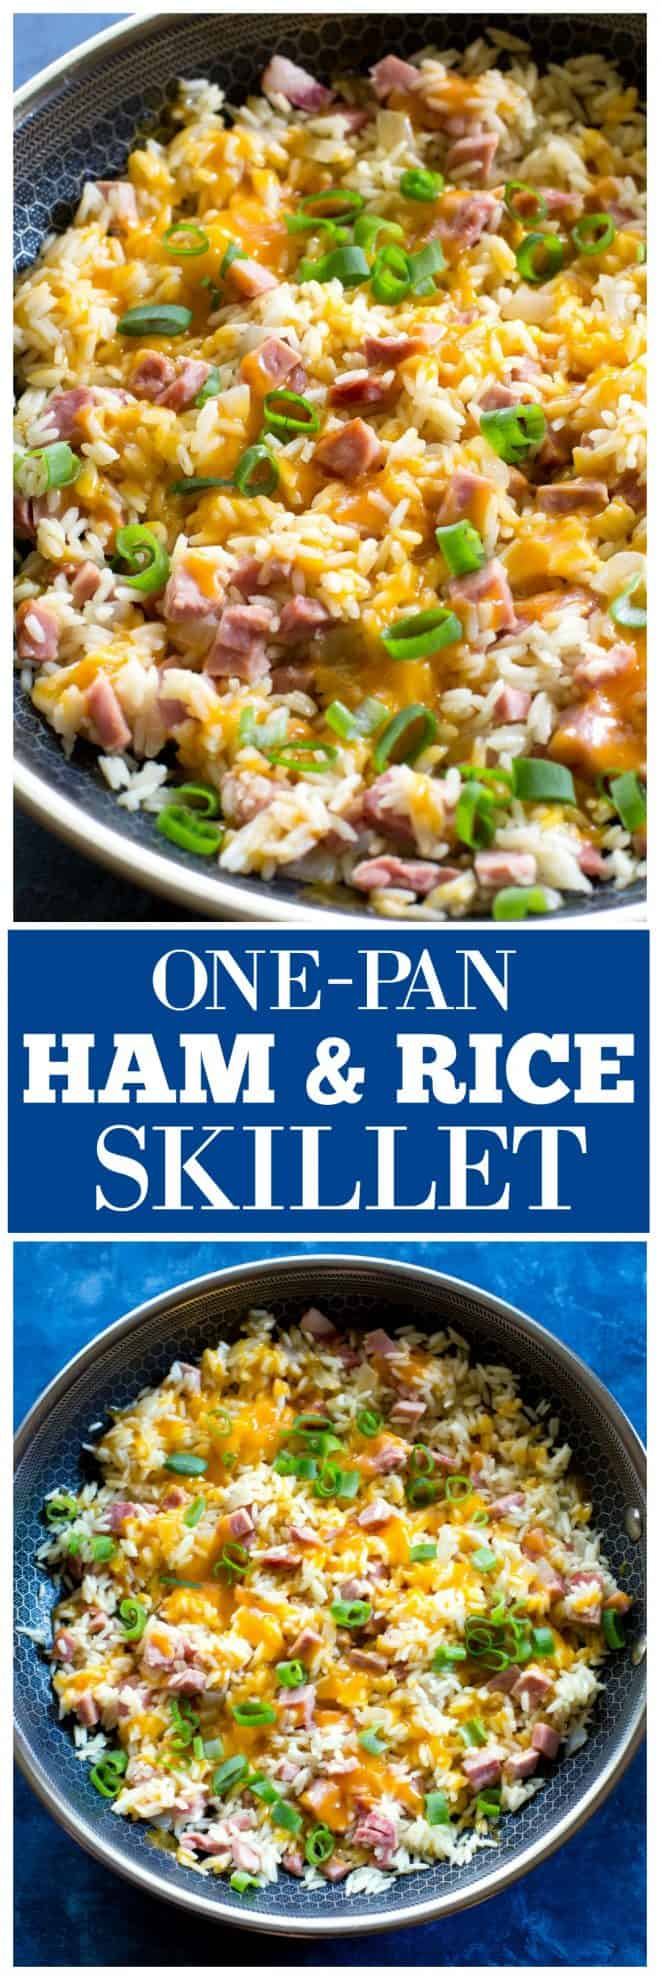 one-pan ham and rice skillet